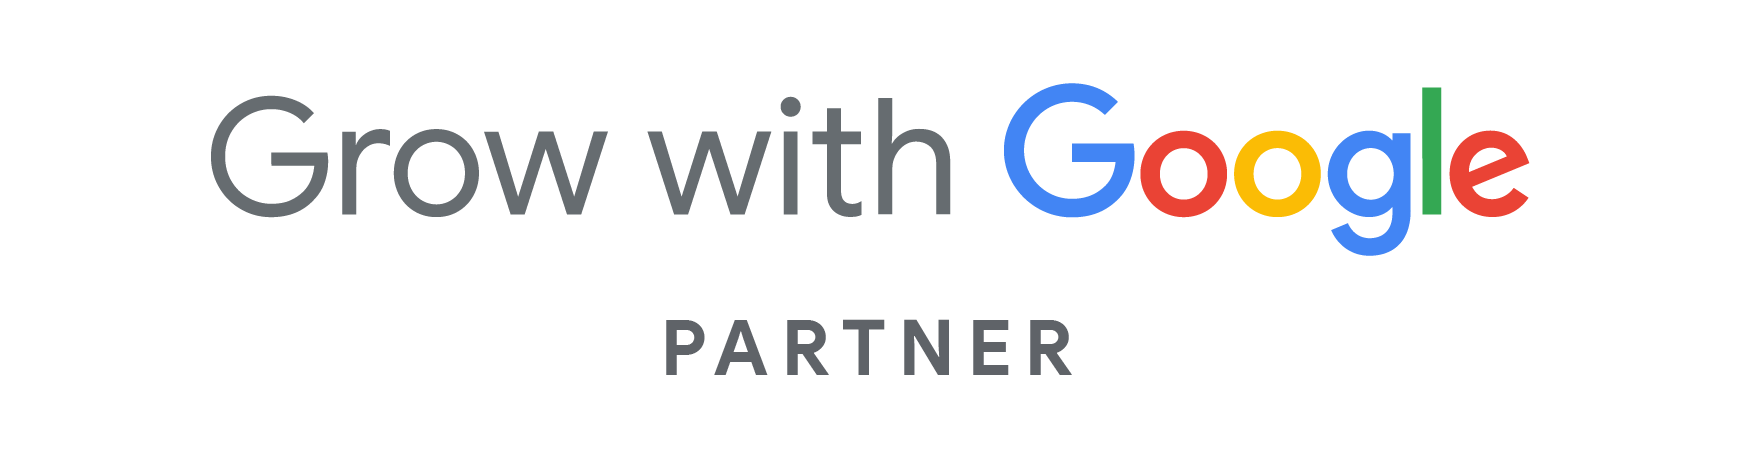 RGB_GWG-PARTNER-BADGE_GENERIC_small.png